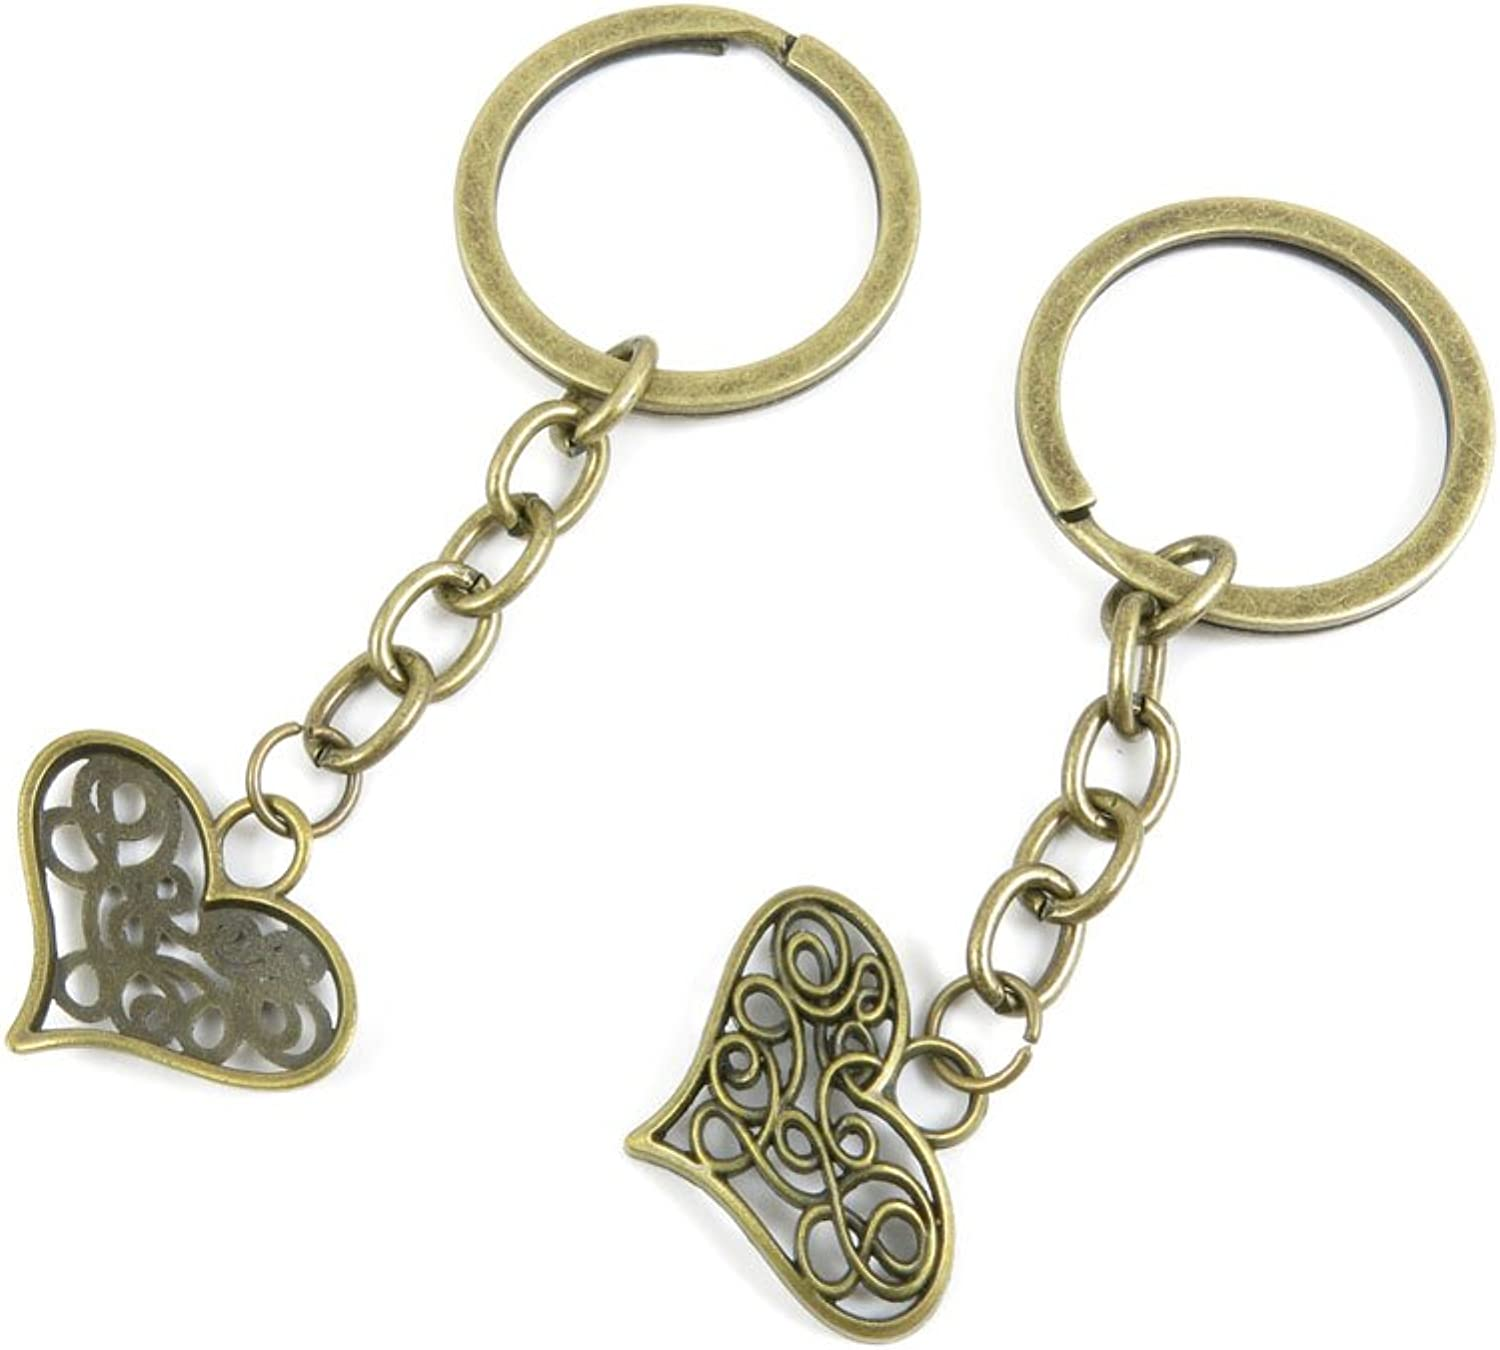 240 Pieces Fashion Jewelry Keyring Keychain Door Car Key Tag Ring Chain Supplier Supply Wholesale Bulk Lots N6KP3 Hollow Heart